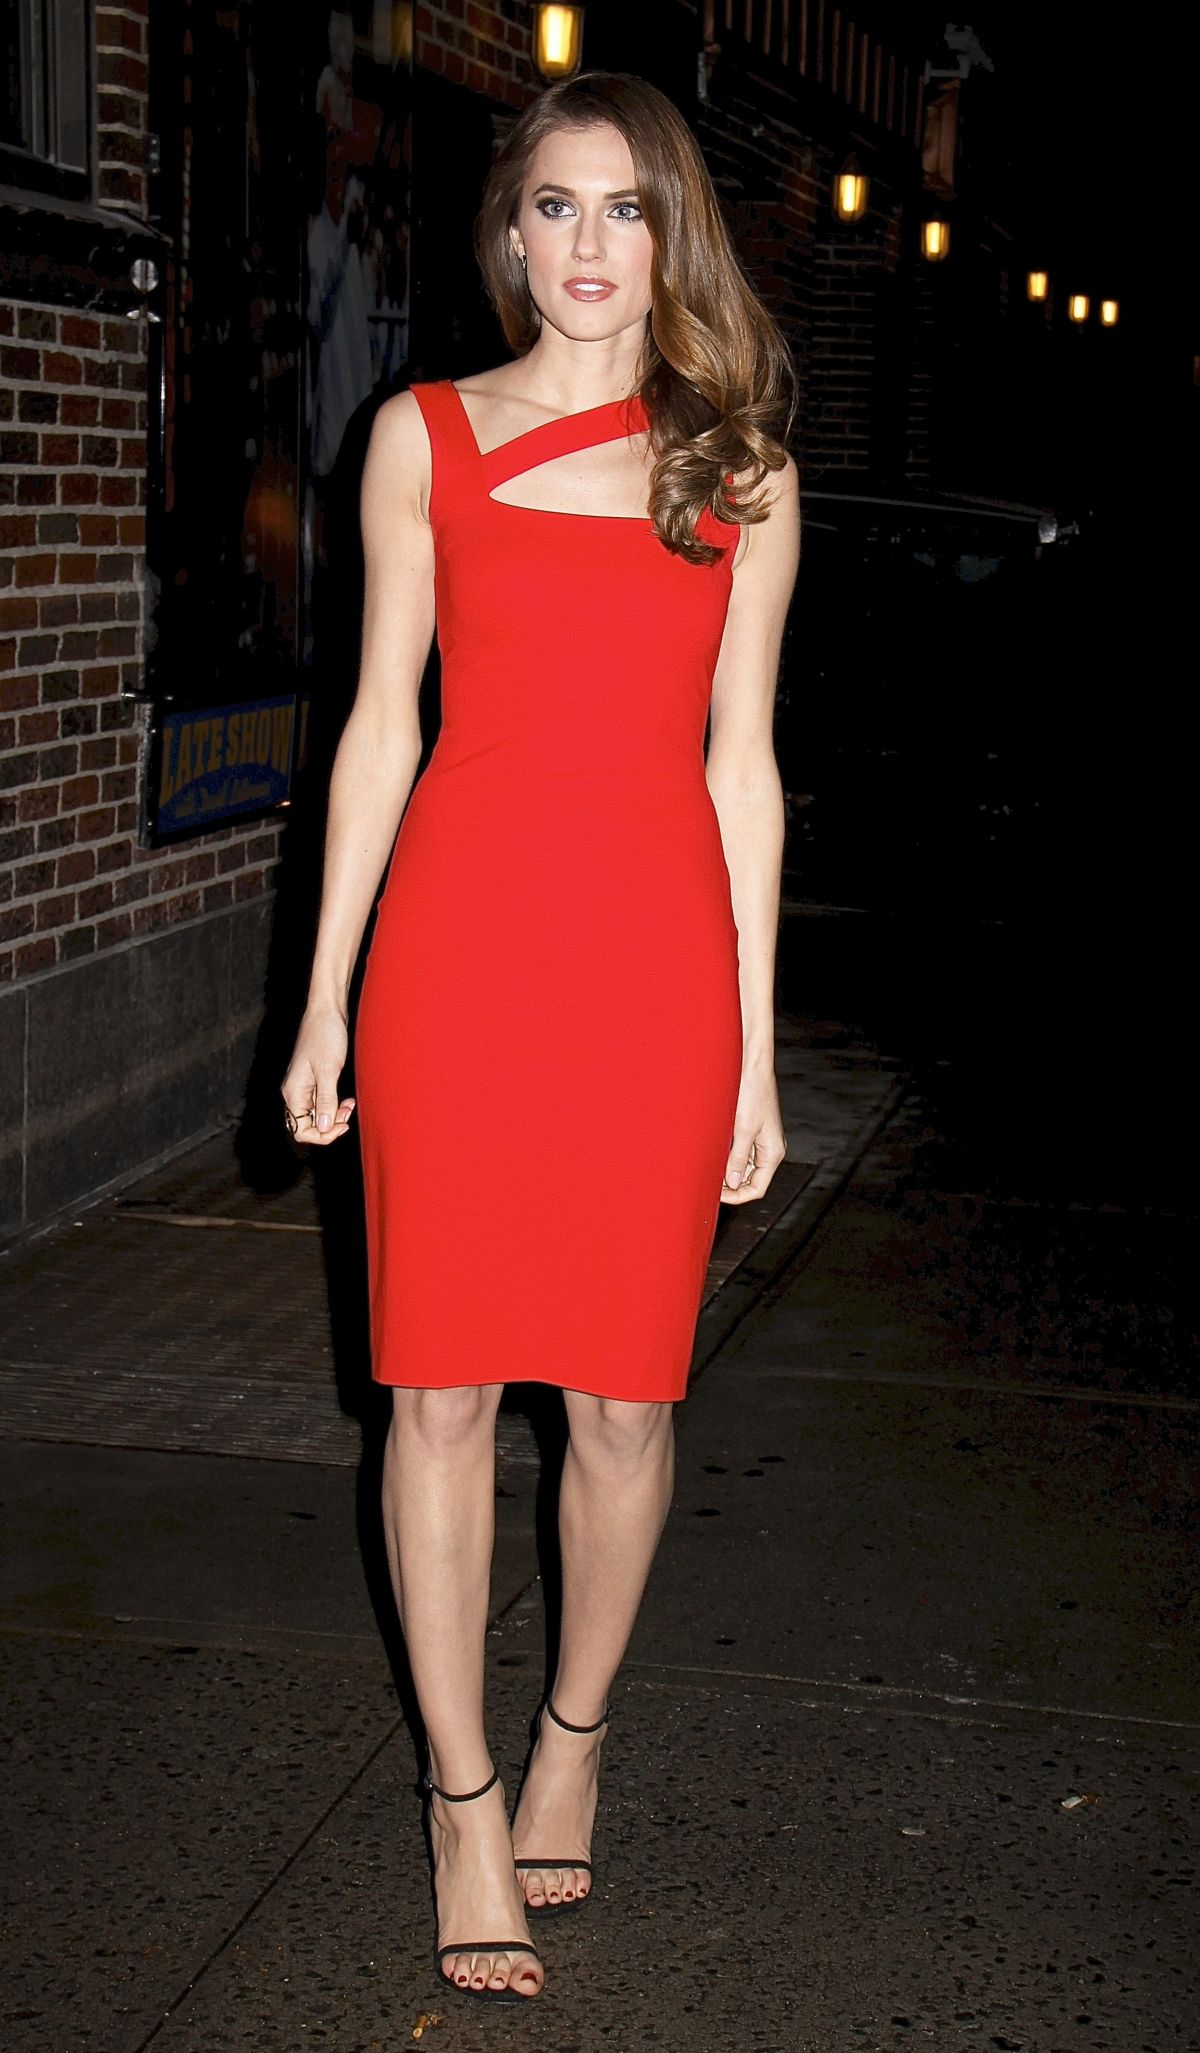 allison-williams-arrives-at-late-show-with-david-letterman-in-new-york_7